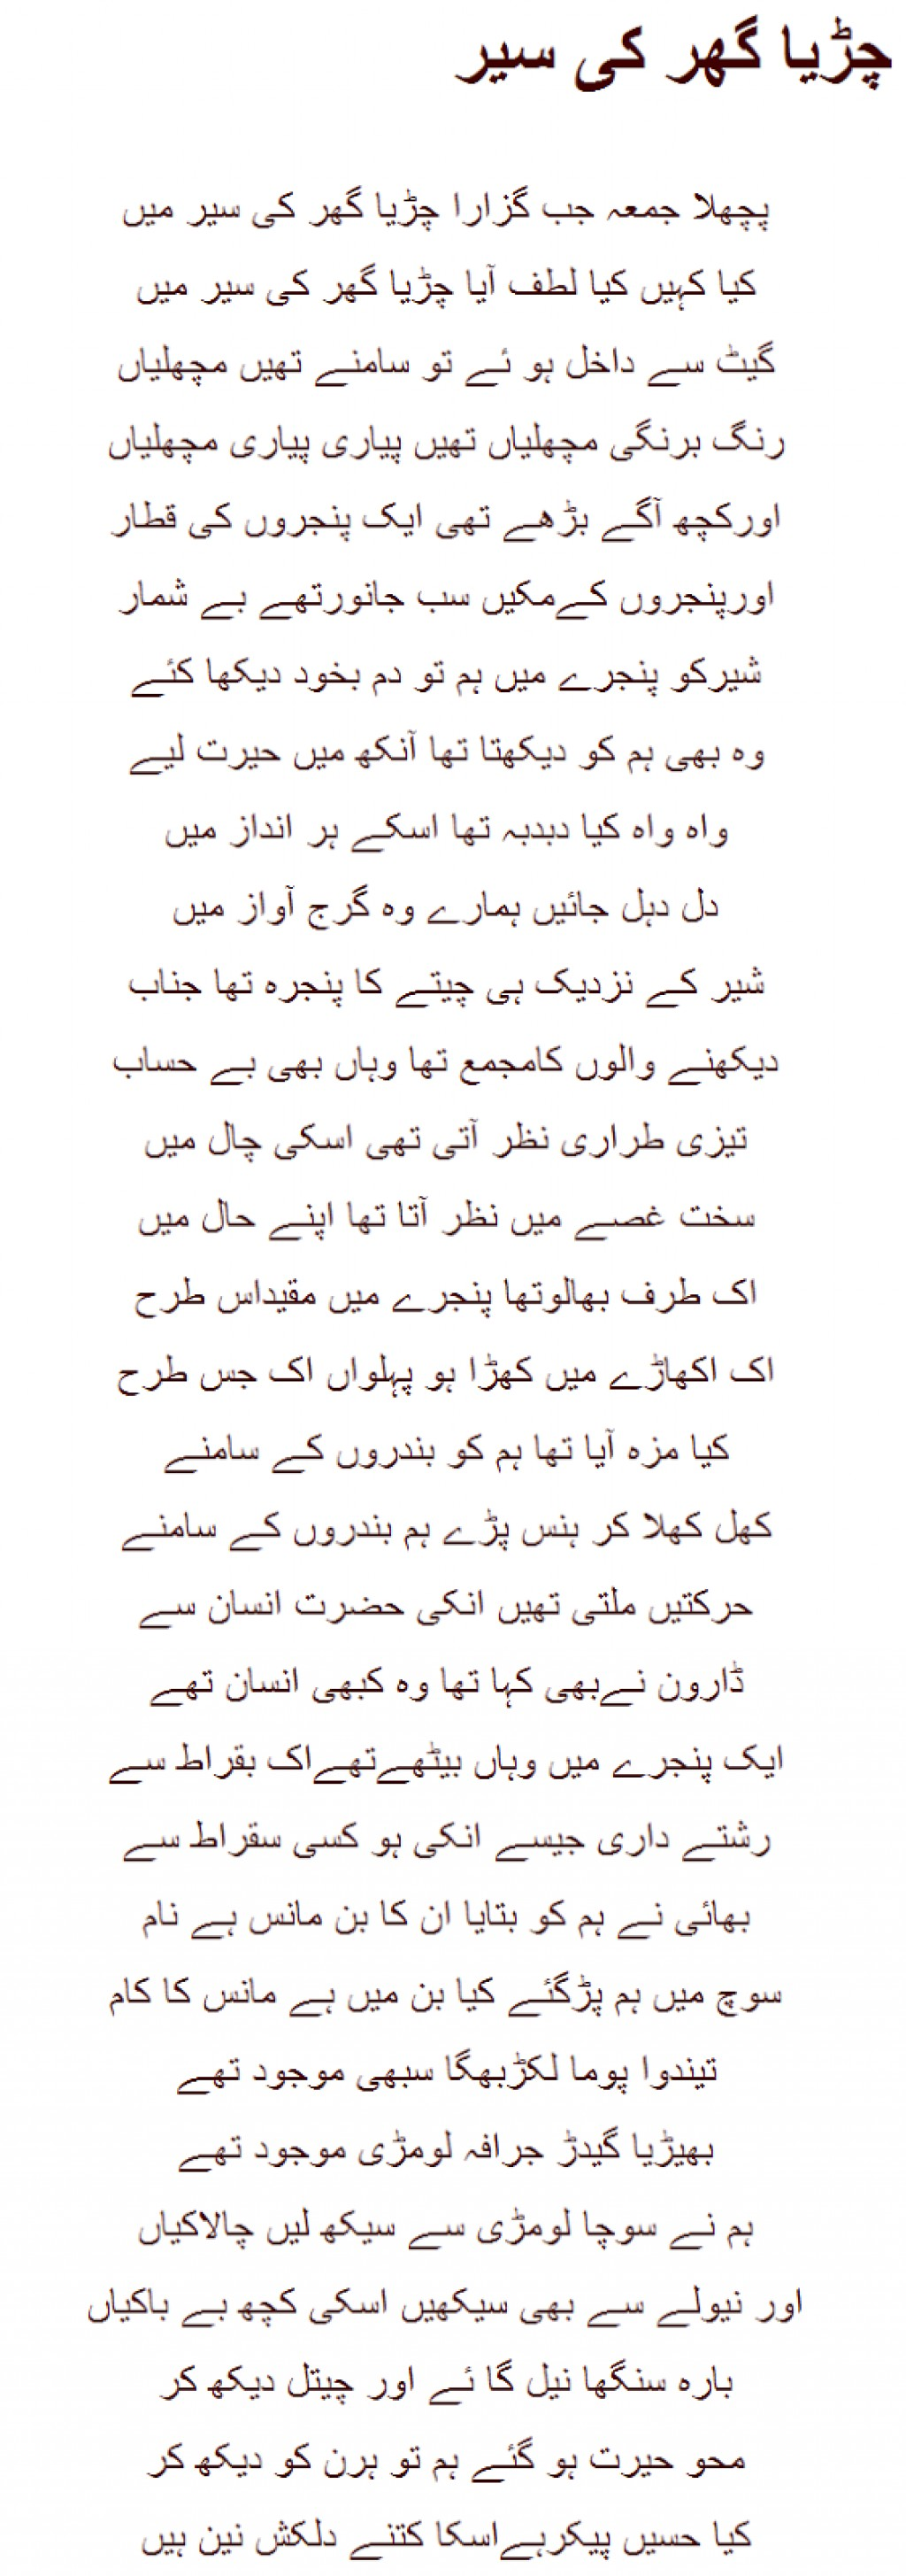 014 Patriotism Essay Zoo2bshayari2bin2burdu Wondrous In English For 2nd Year American Legion Contest On Pakistan Large